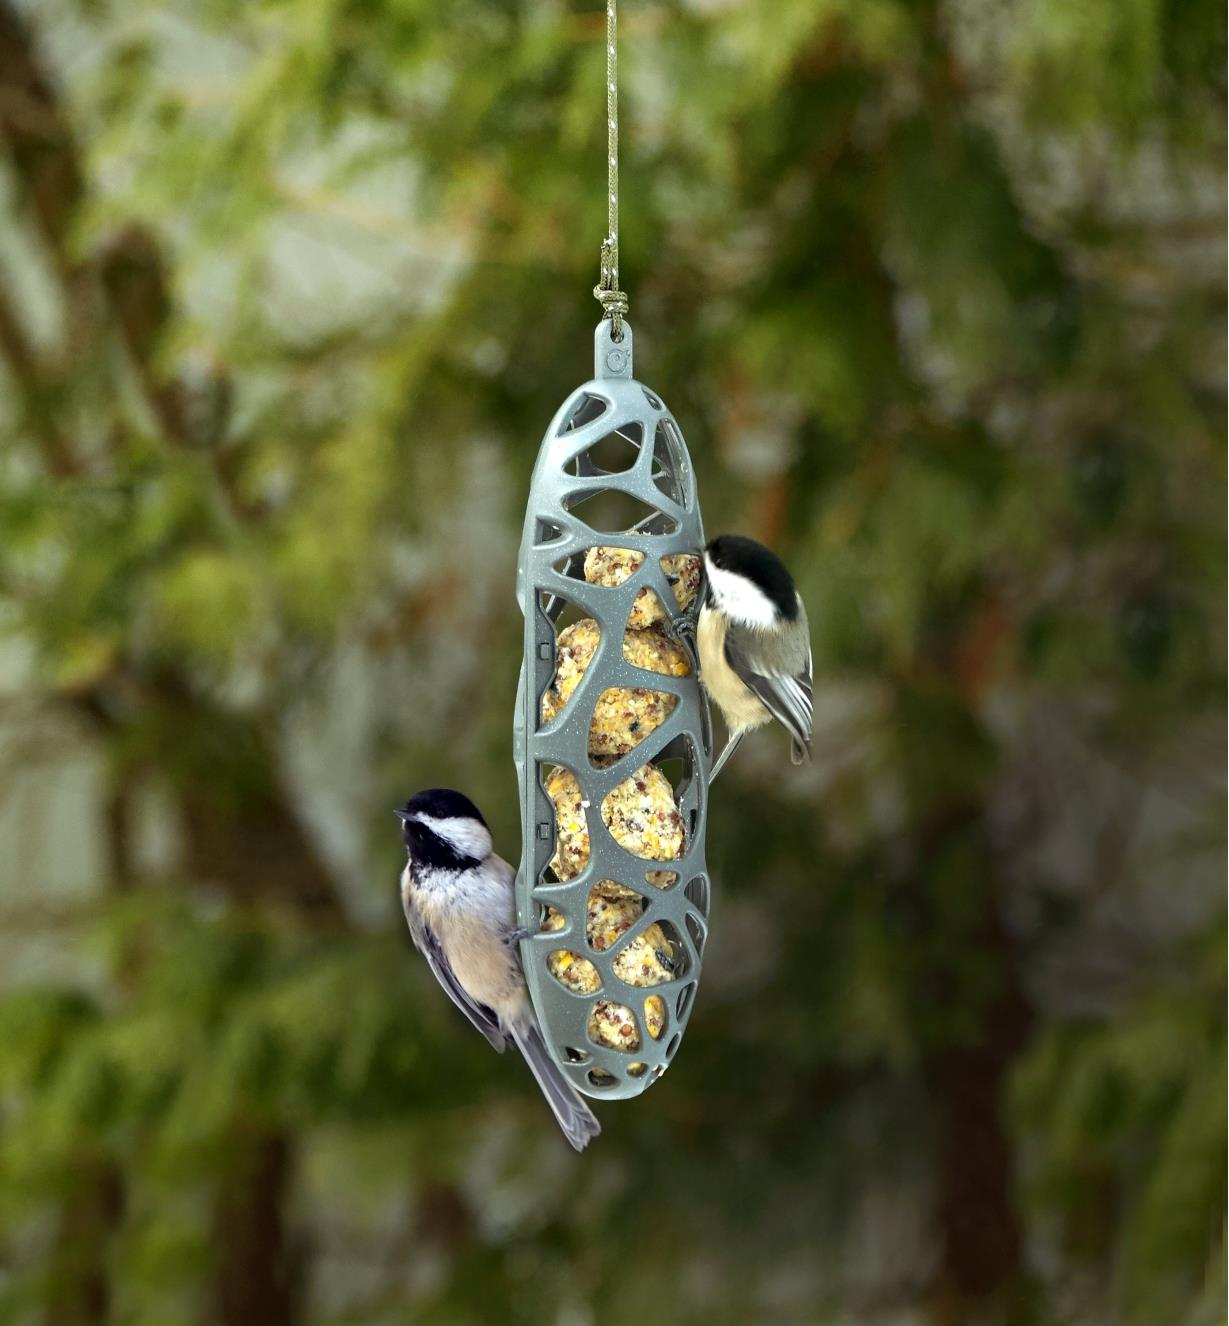 Two chickadees feed from the suet bird feeder hanging in a yard